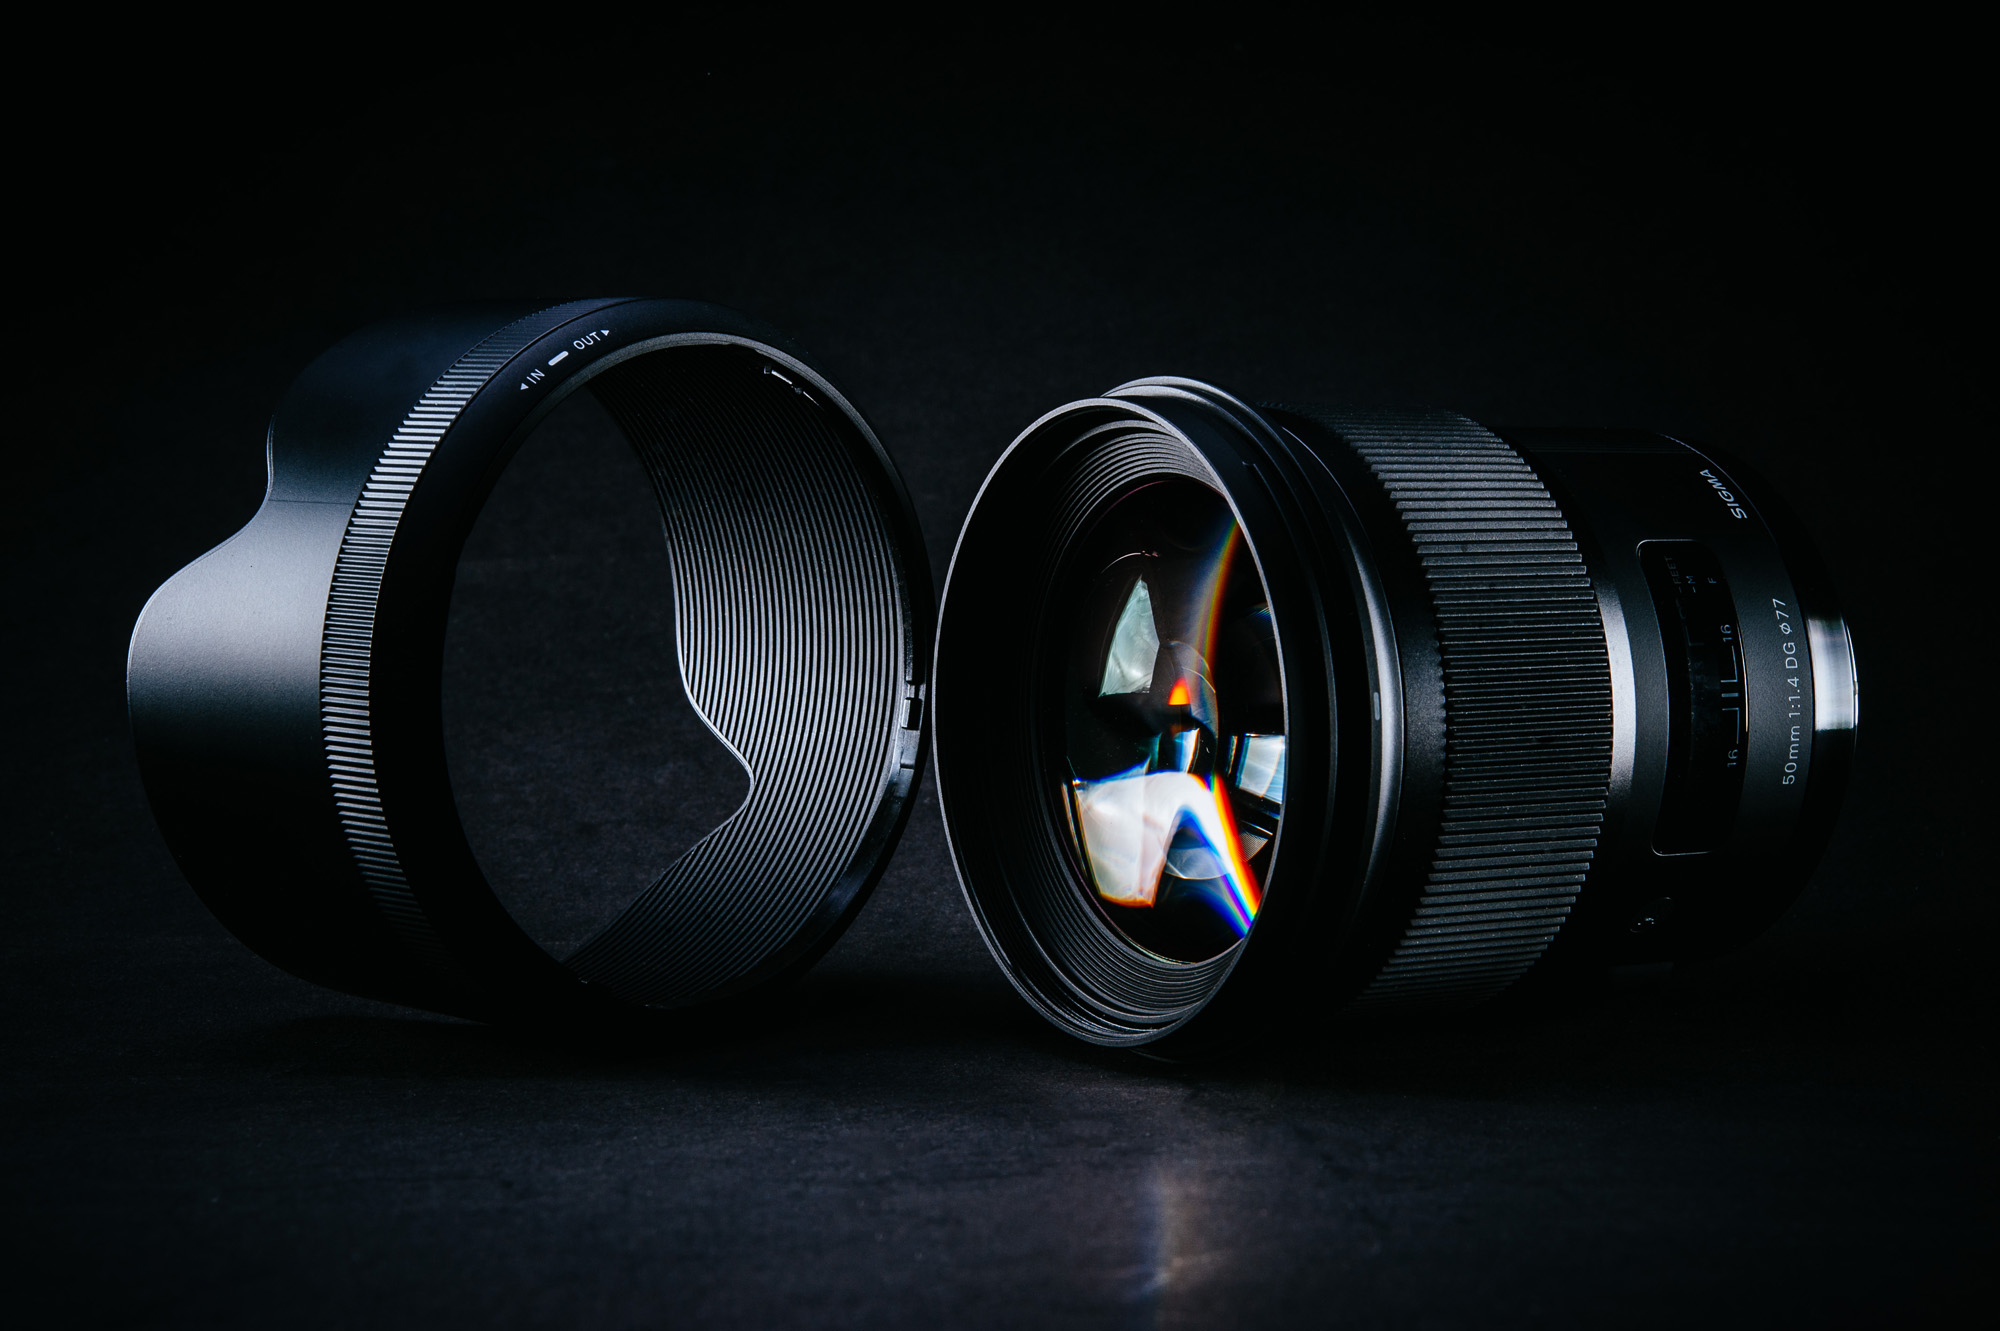 sigma-50mm-f-1.4-DG-HSM-ART-review-03